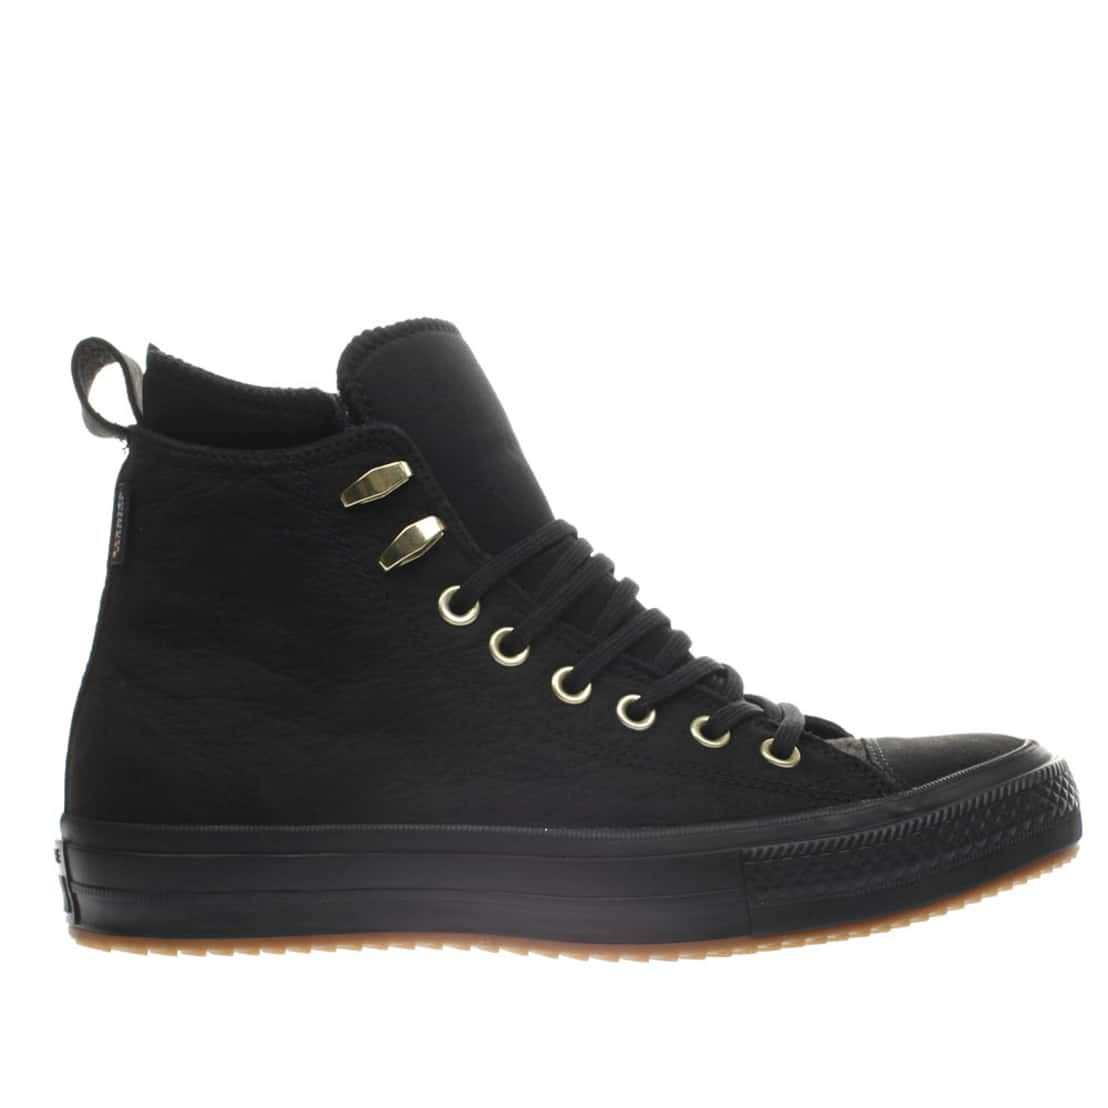 dfd620733ac7 ... hot womens black converse all star waterproof boot hi trainers schuh  e18ed 26326 ...